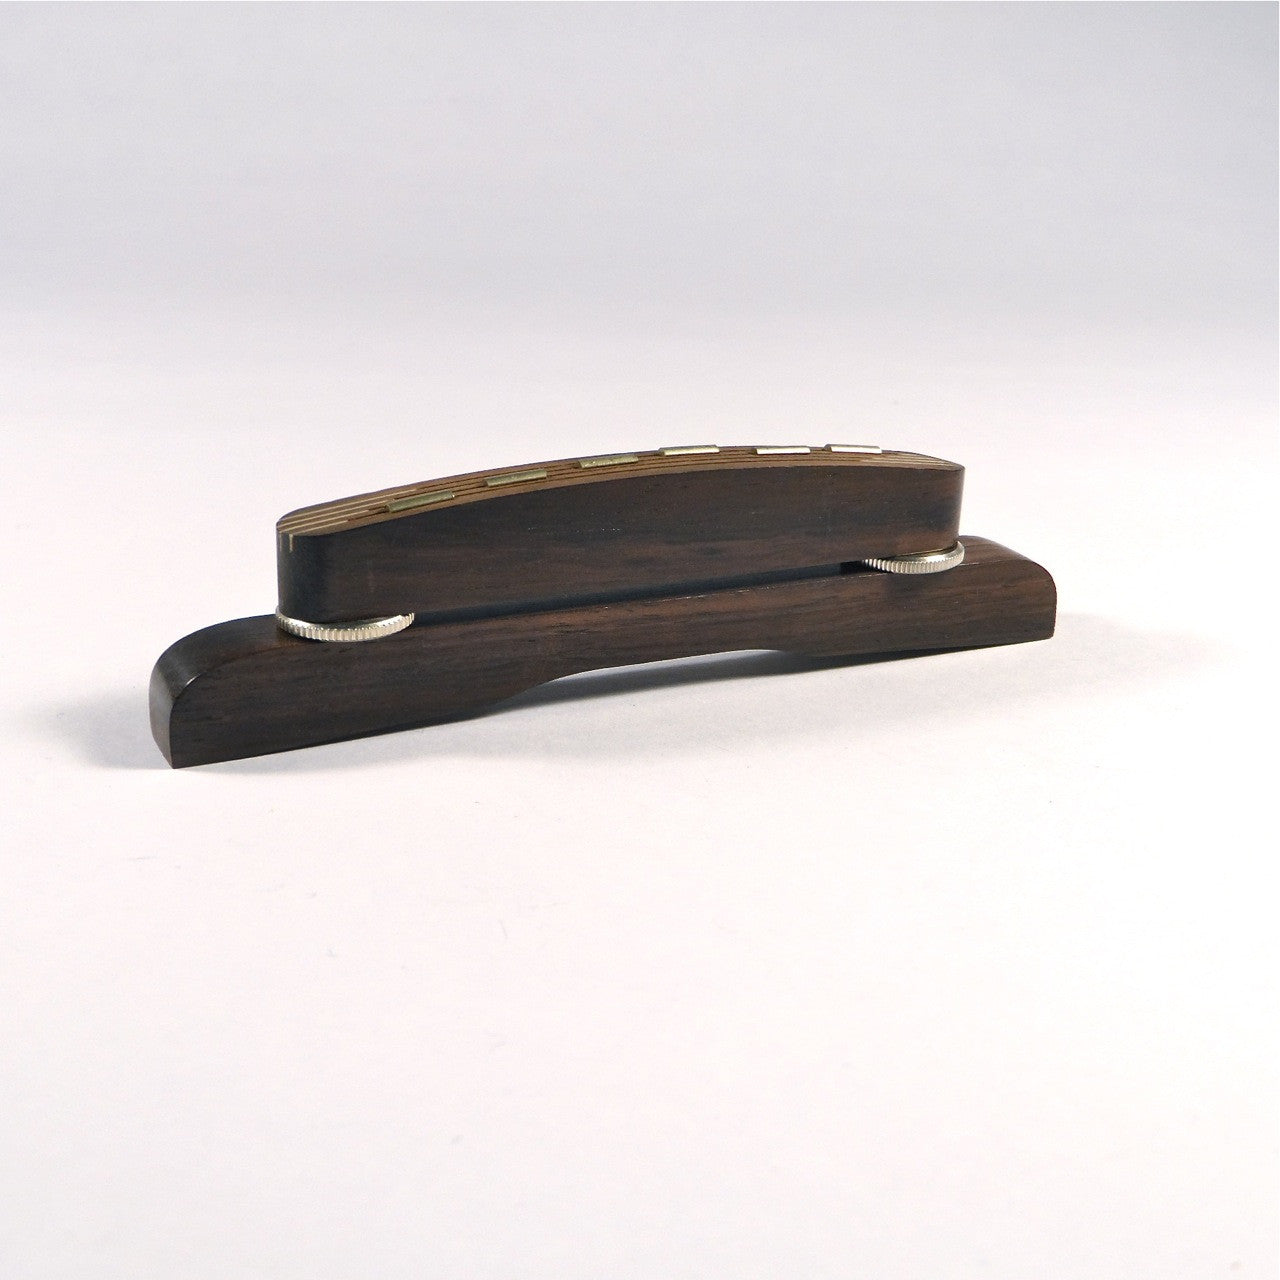 Bridge for archtop guitar, Höfner style, rosewood